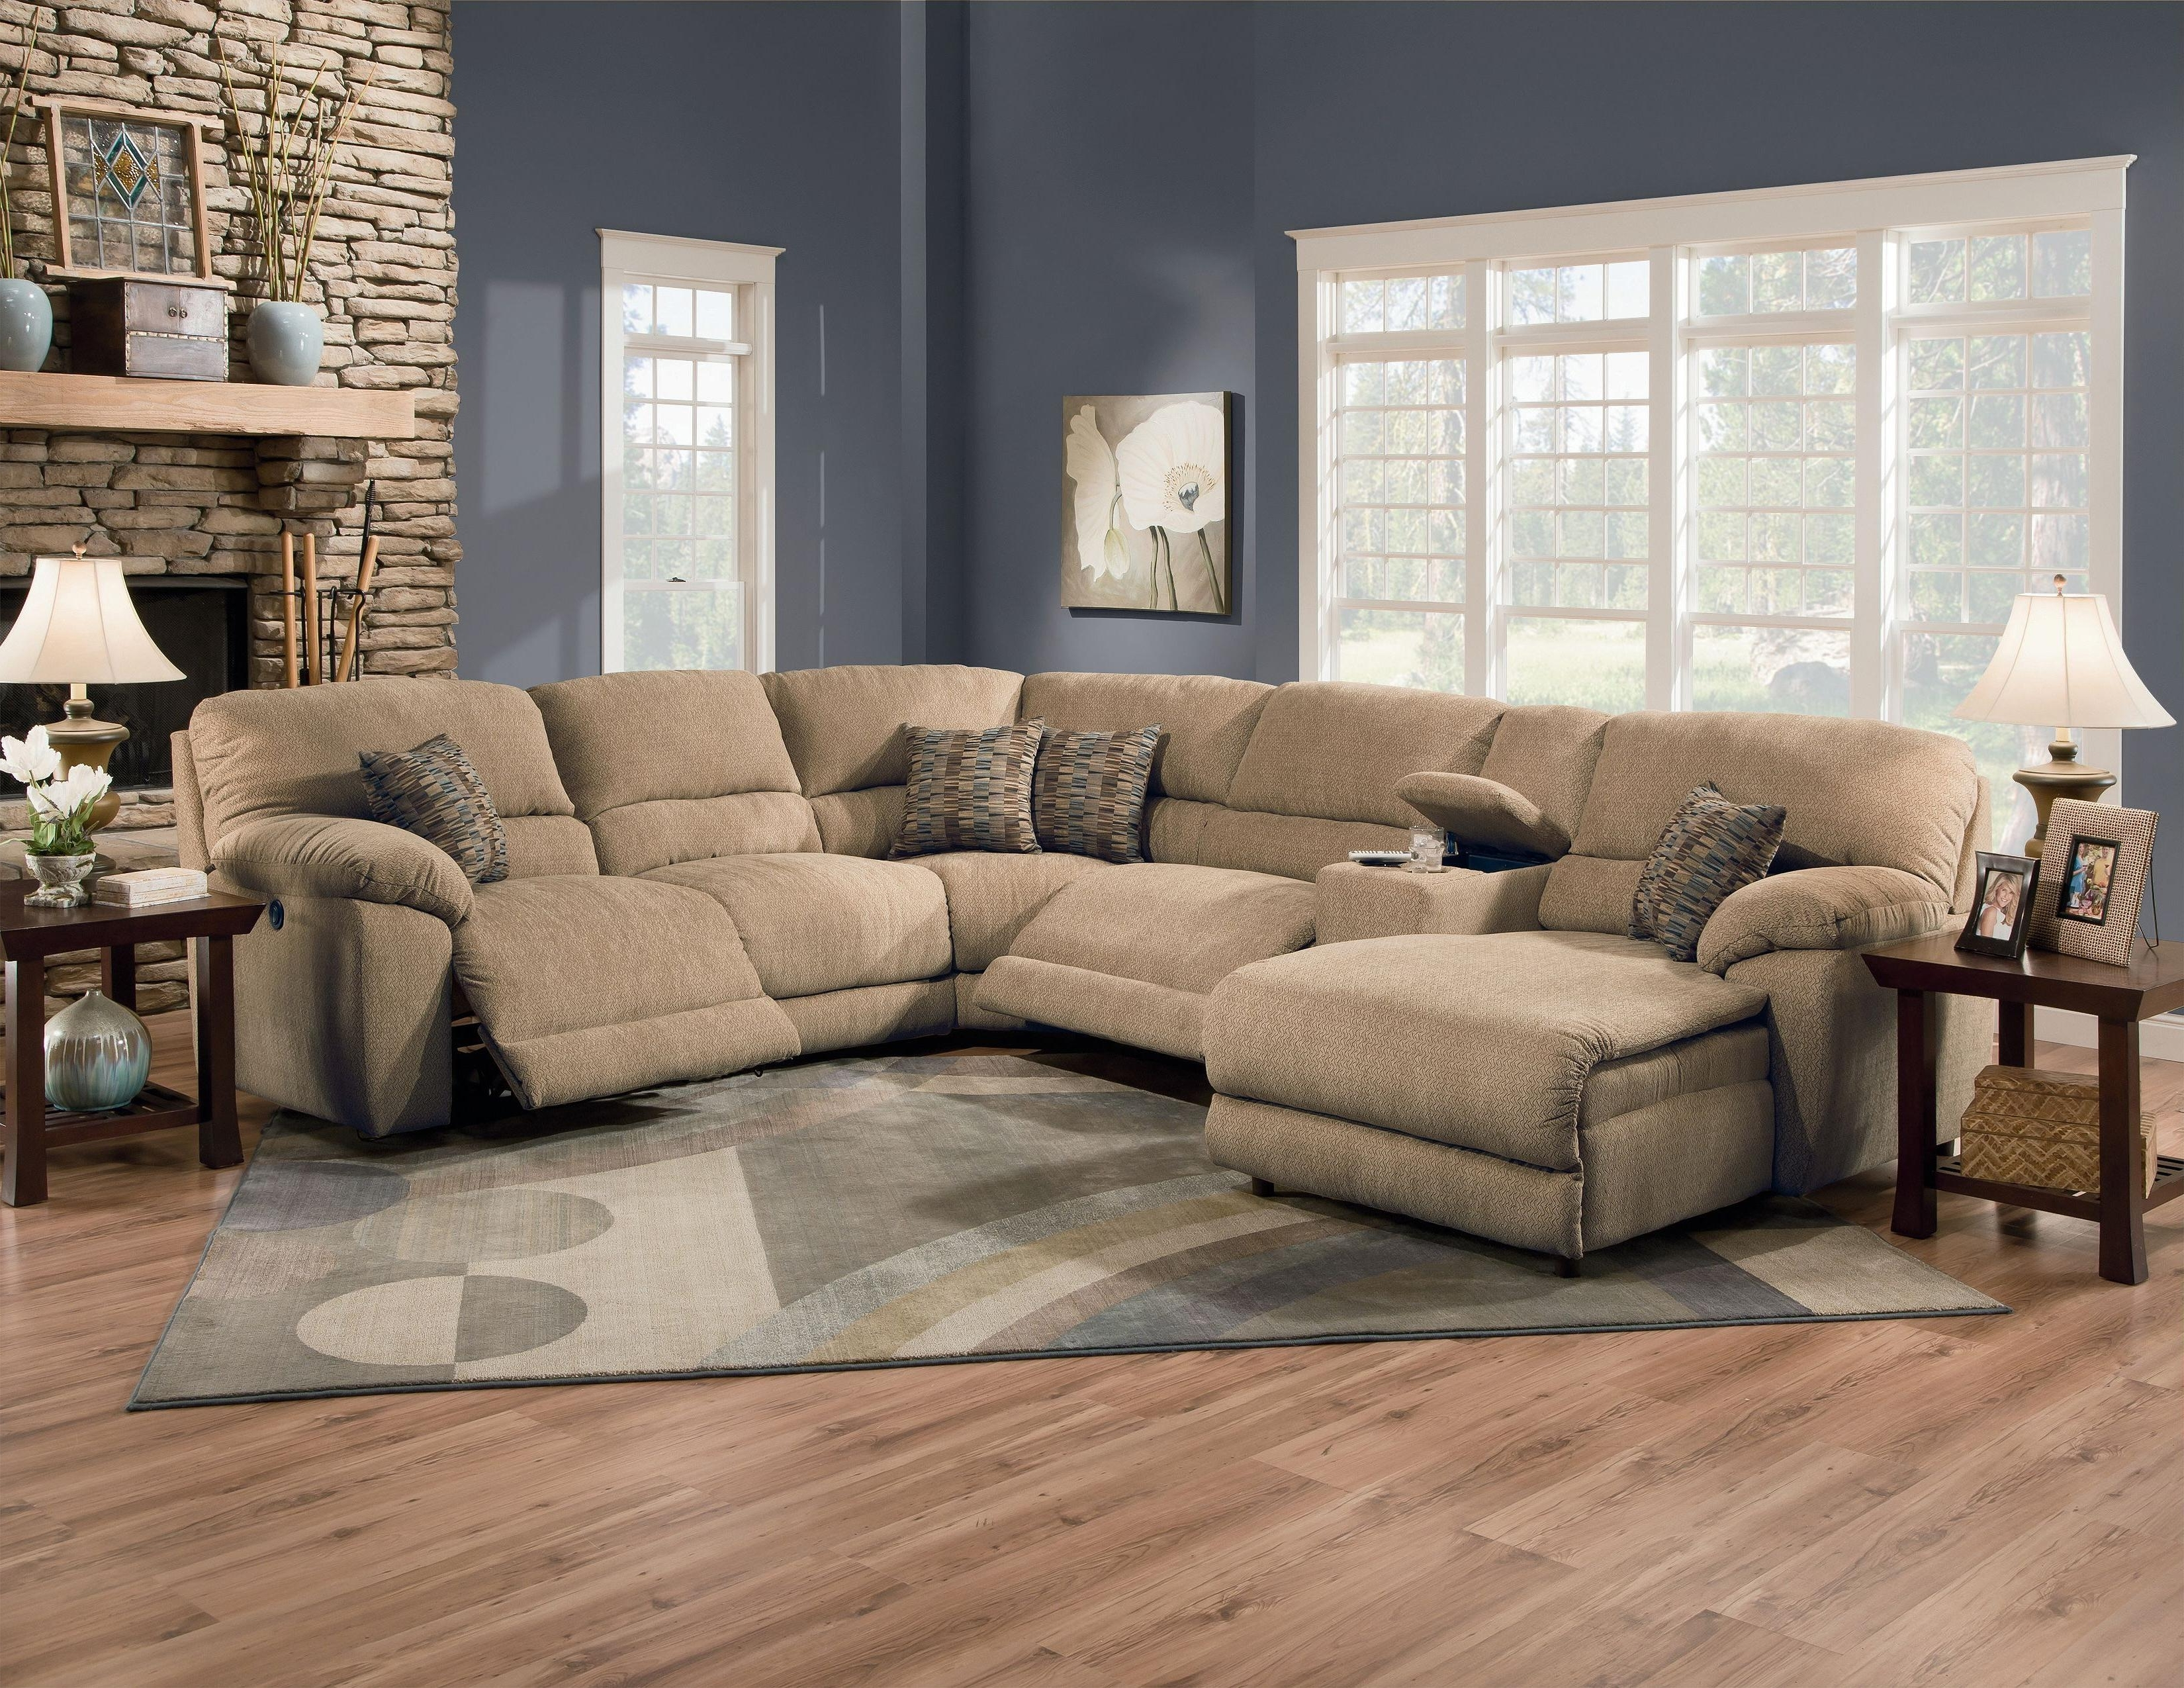 Lane Furniture: Rivers Collection Featuring Power Reclining Intended For Well Known Lubbock Sectional Sofas (View 14 of 15)